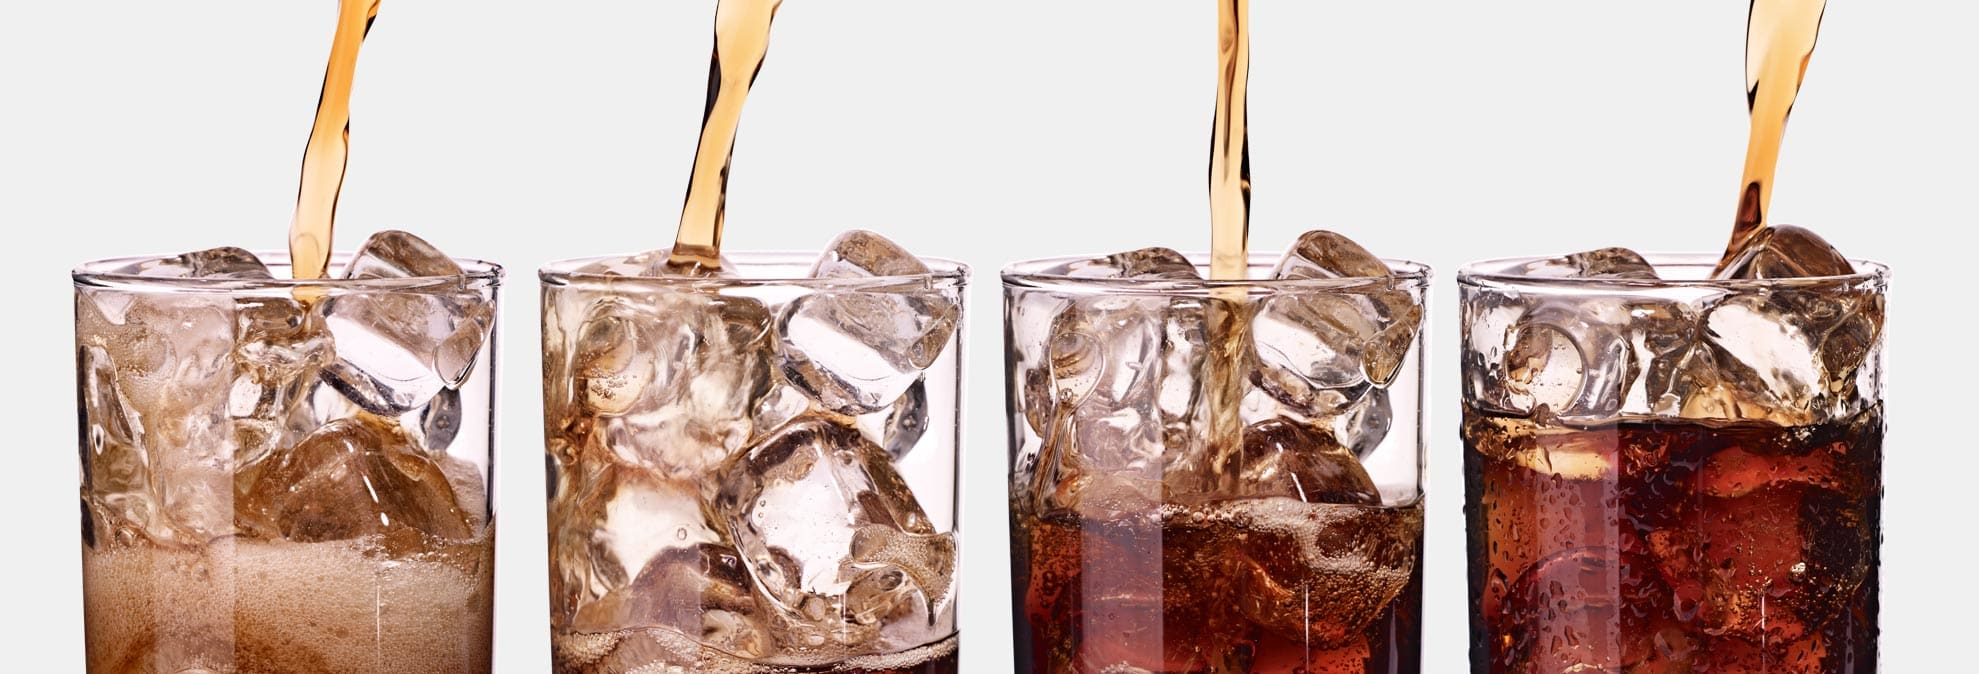 One of the easiest things you can do to cut back on sugar intake is to not drink your calories - avoid sugary drinks like cocktails, soda, coffee drinks, and sweetened tea.